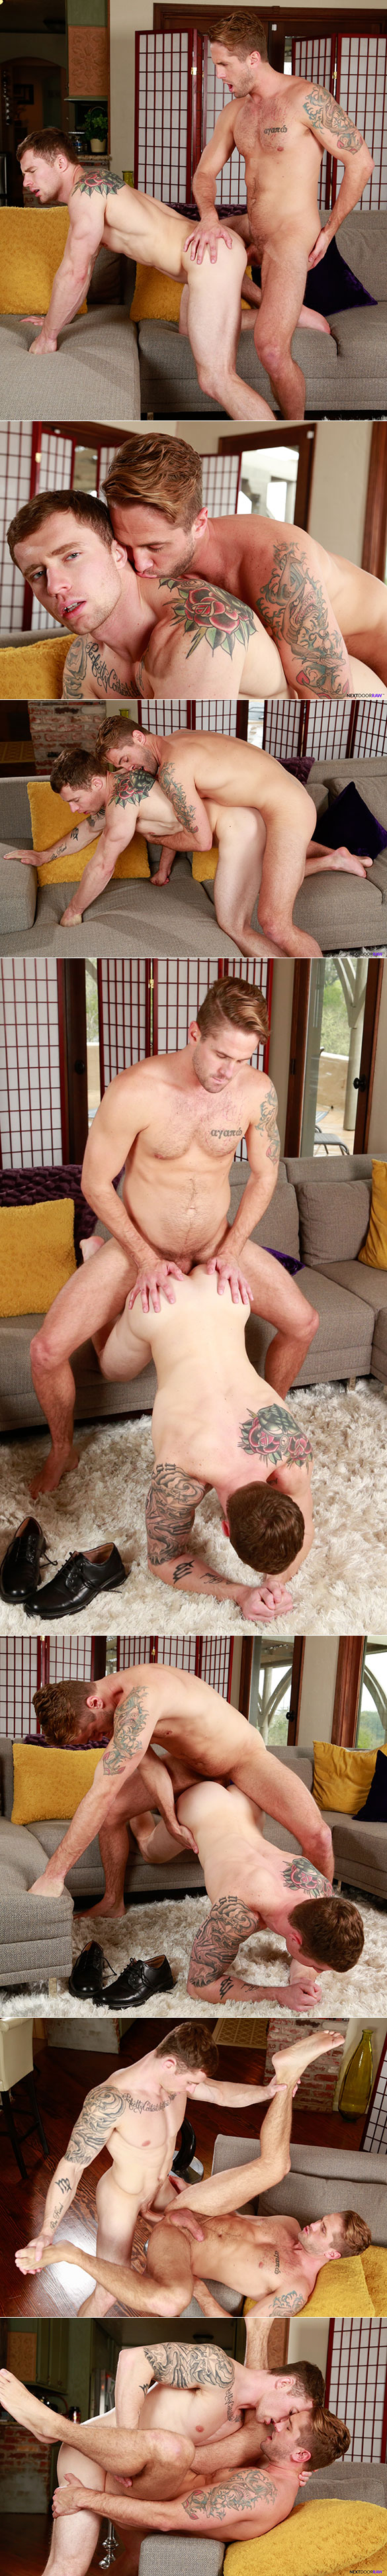 """Next Door Raw: Markie More and Wesley Woods bang each other bareback in """"Handy Handyman"""""""